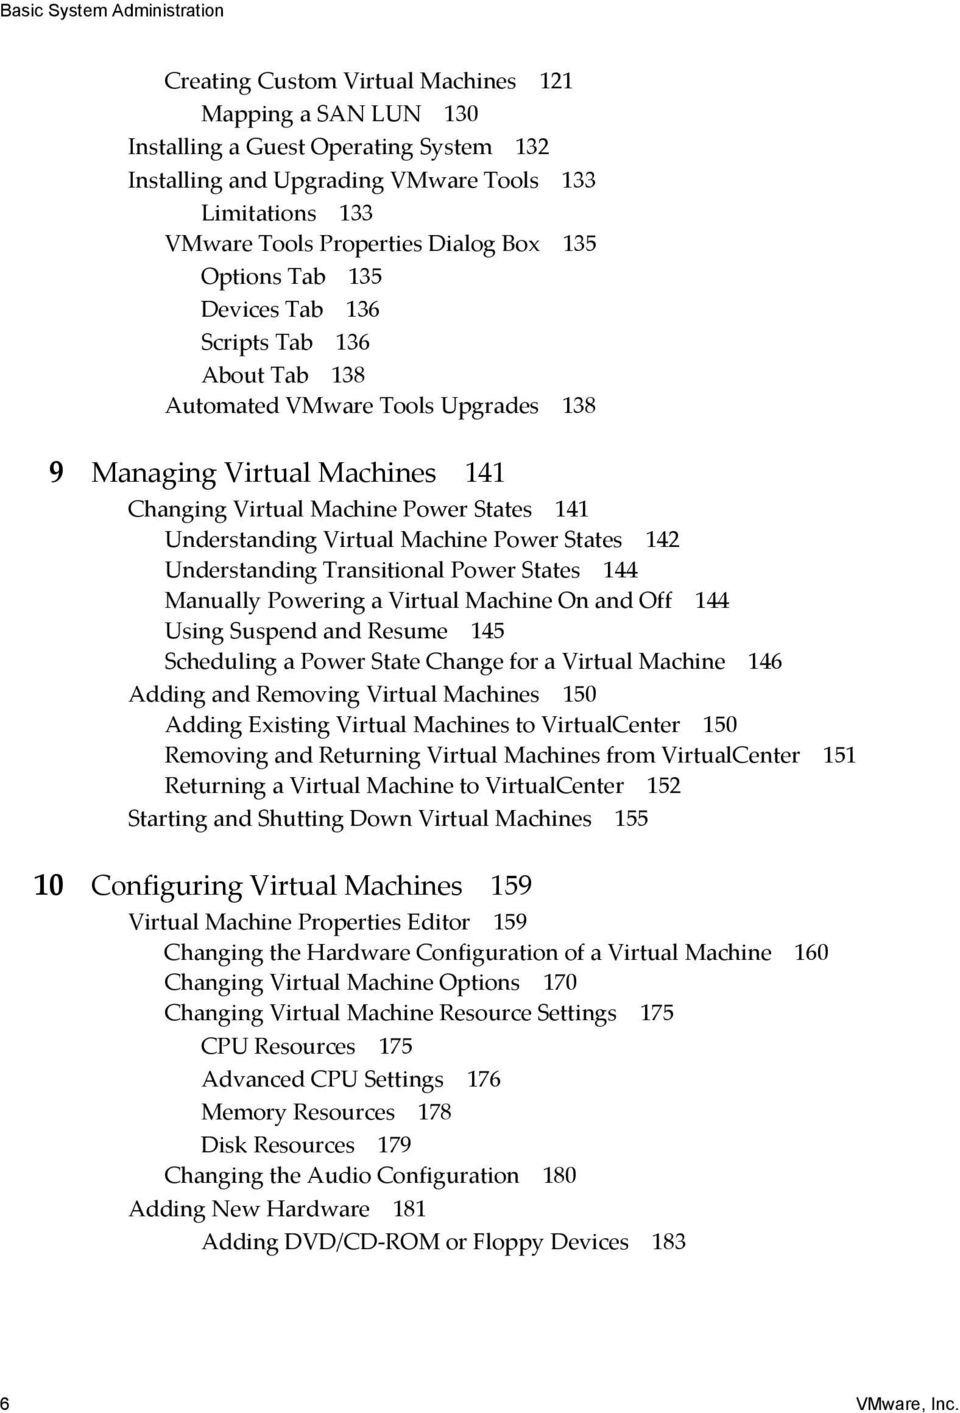 Understanding Virtual Machine Power States 142 Understanding Transitional Power States 144 Manually Powering a Virtual Machine On and Off 144 Using Suspend and Resume 145 Scheduling a Power State